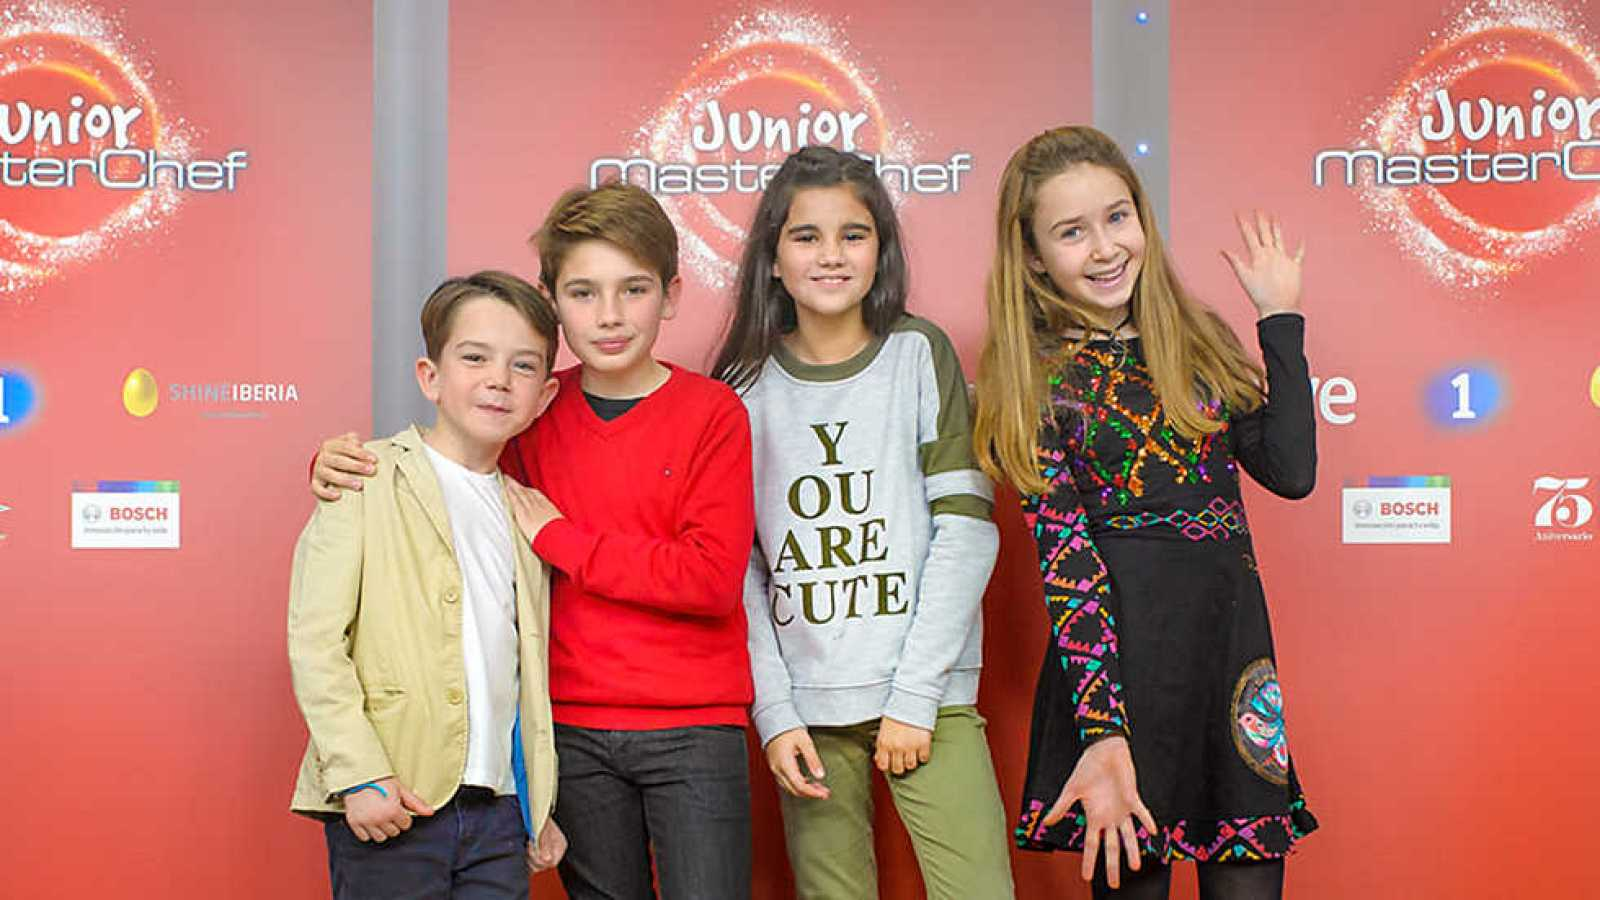 Masterchef Junior 4 Programa 1 201216 Rtvees